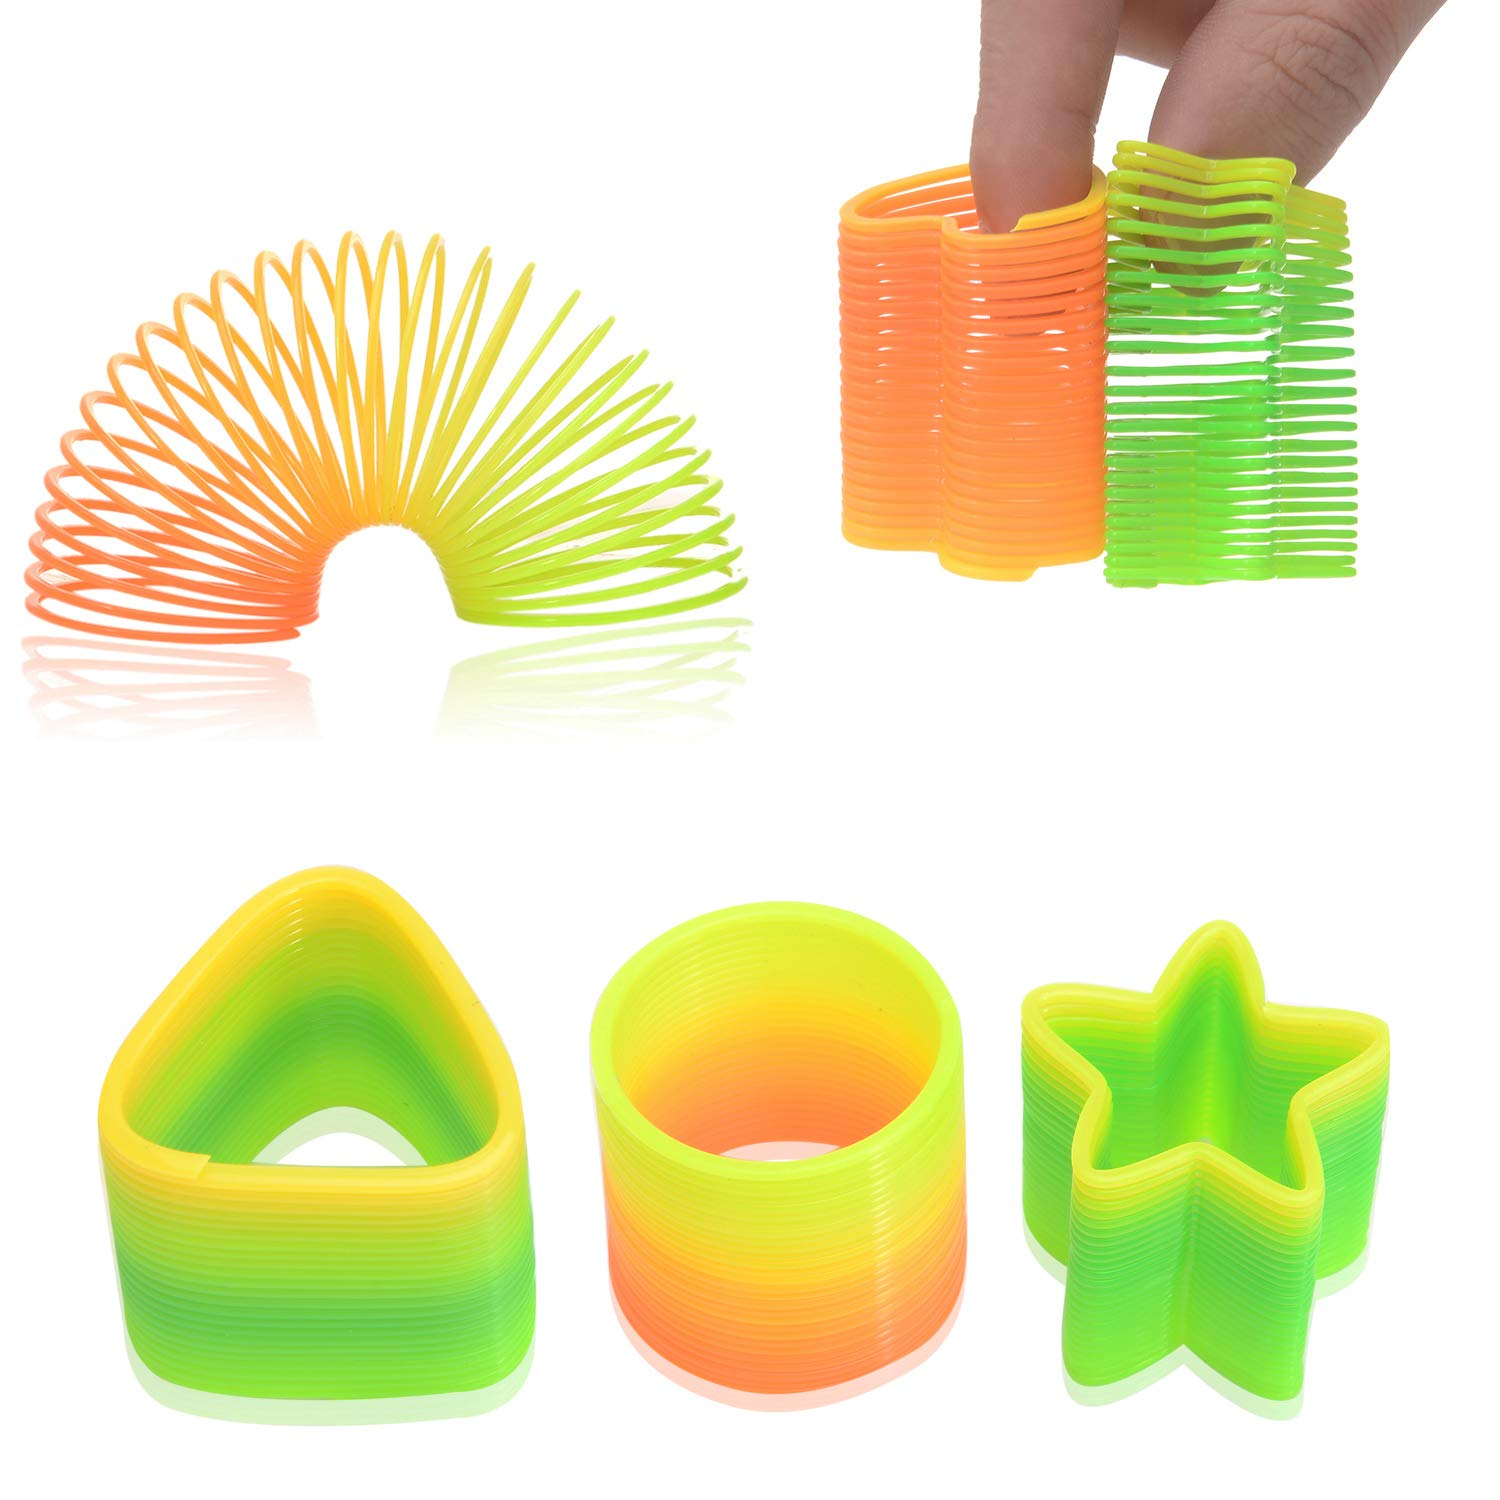 50 Assorted Miniature Rainbow Spring Slinky Toy Multiple Shapes Perfect Size for Kids Bright Colors and Durable Designs Awesome As Birthday Party Favors Piñata Fillers and Stocking Stuffers